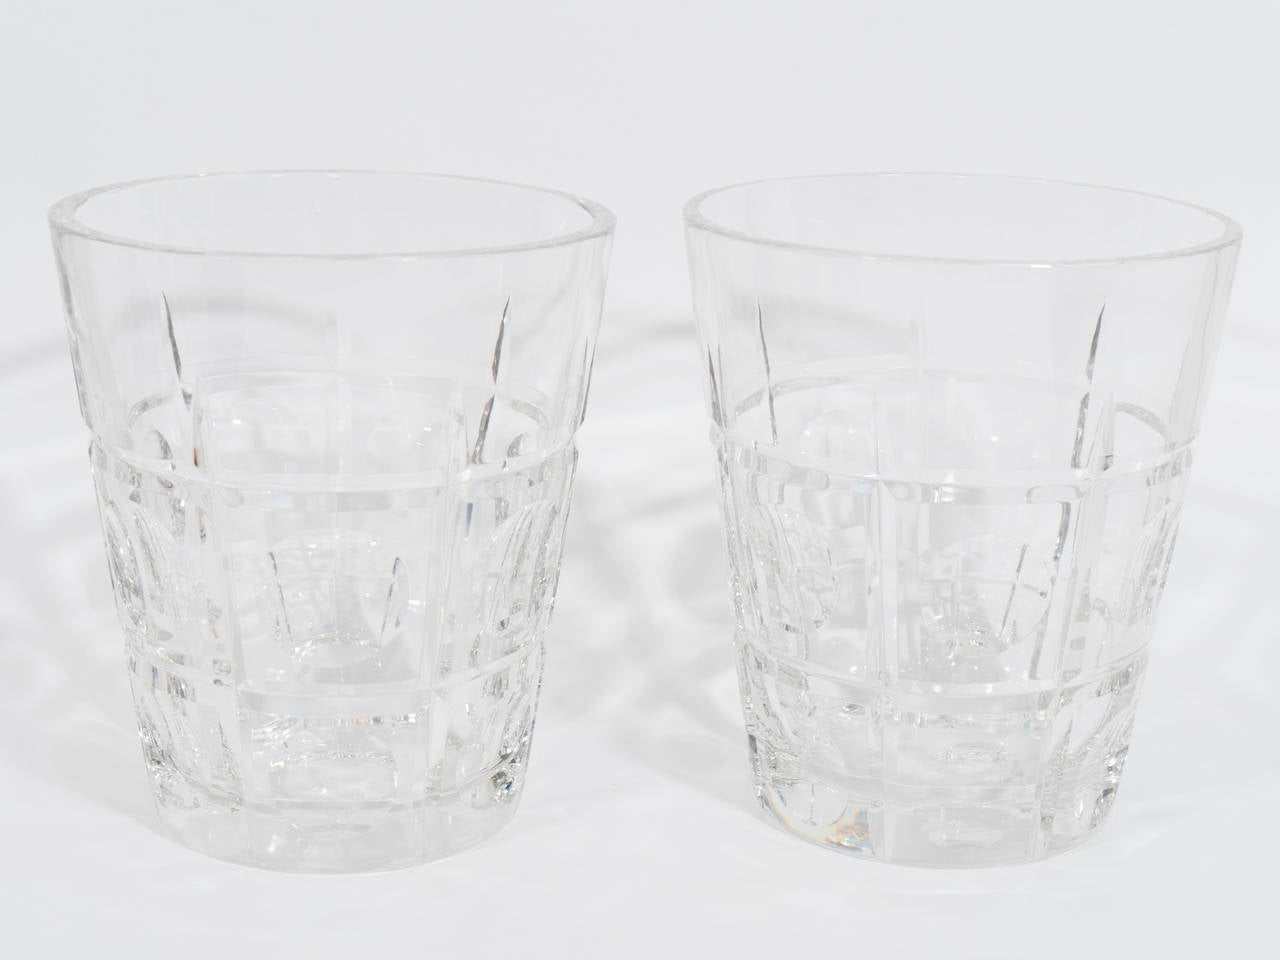 Vintage Pair of Sevres Crystal Vases or Ice Buckets For